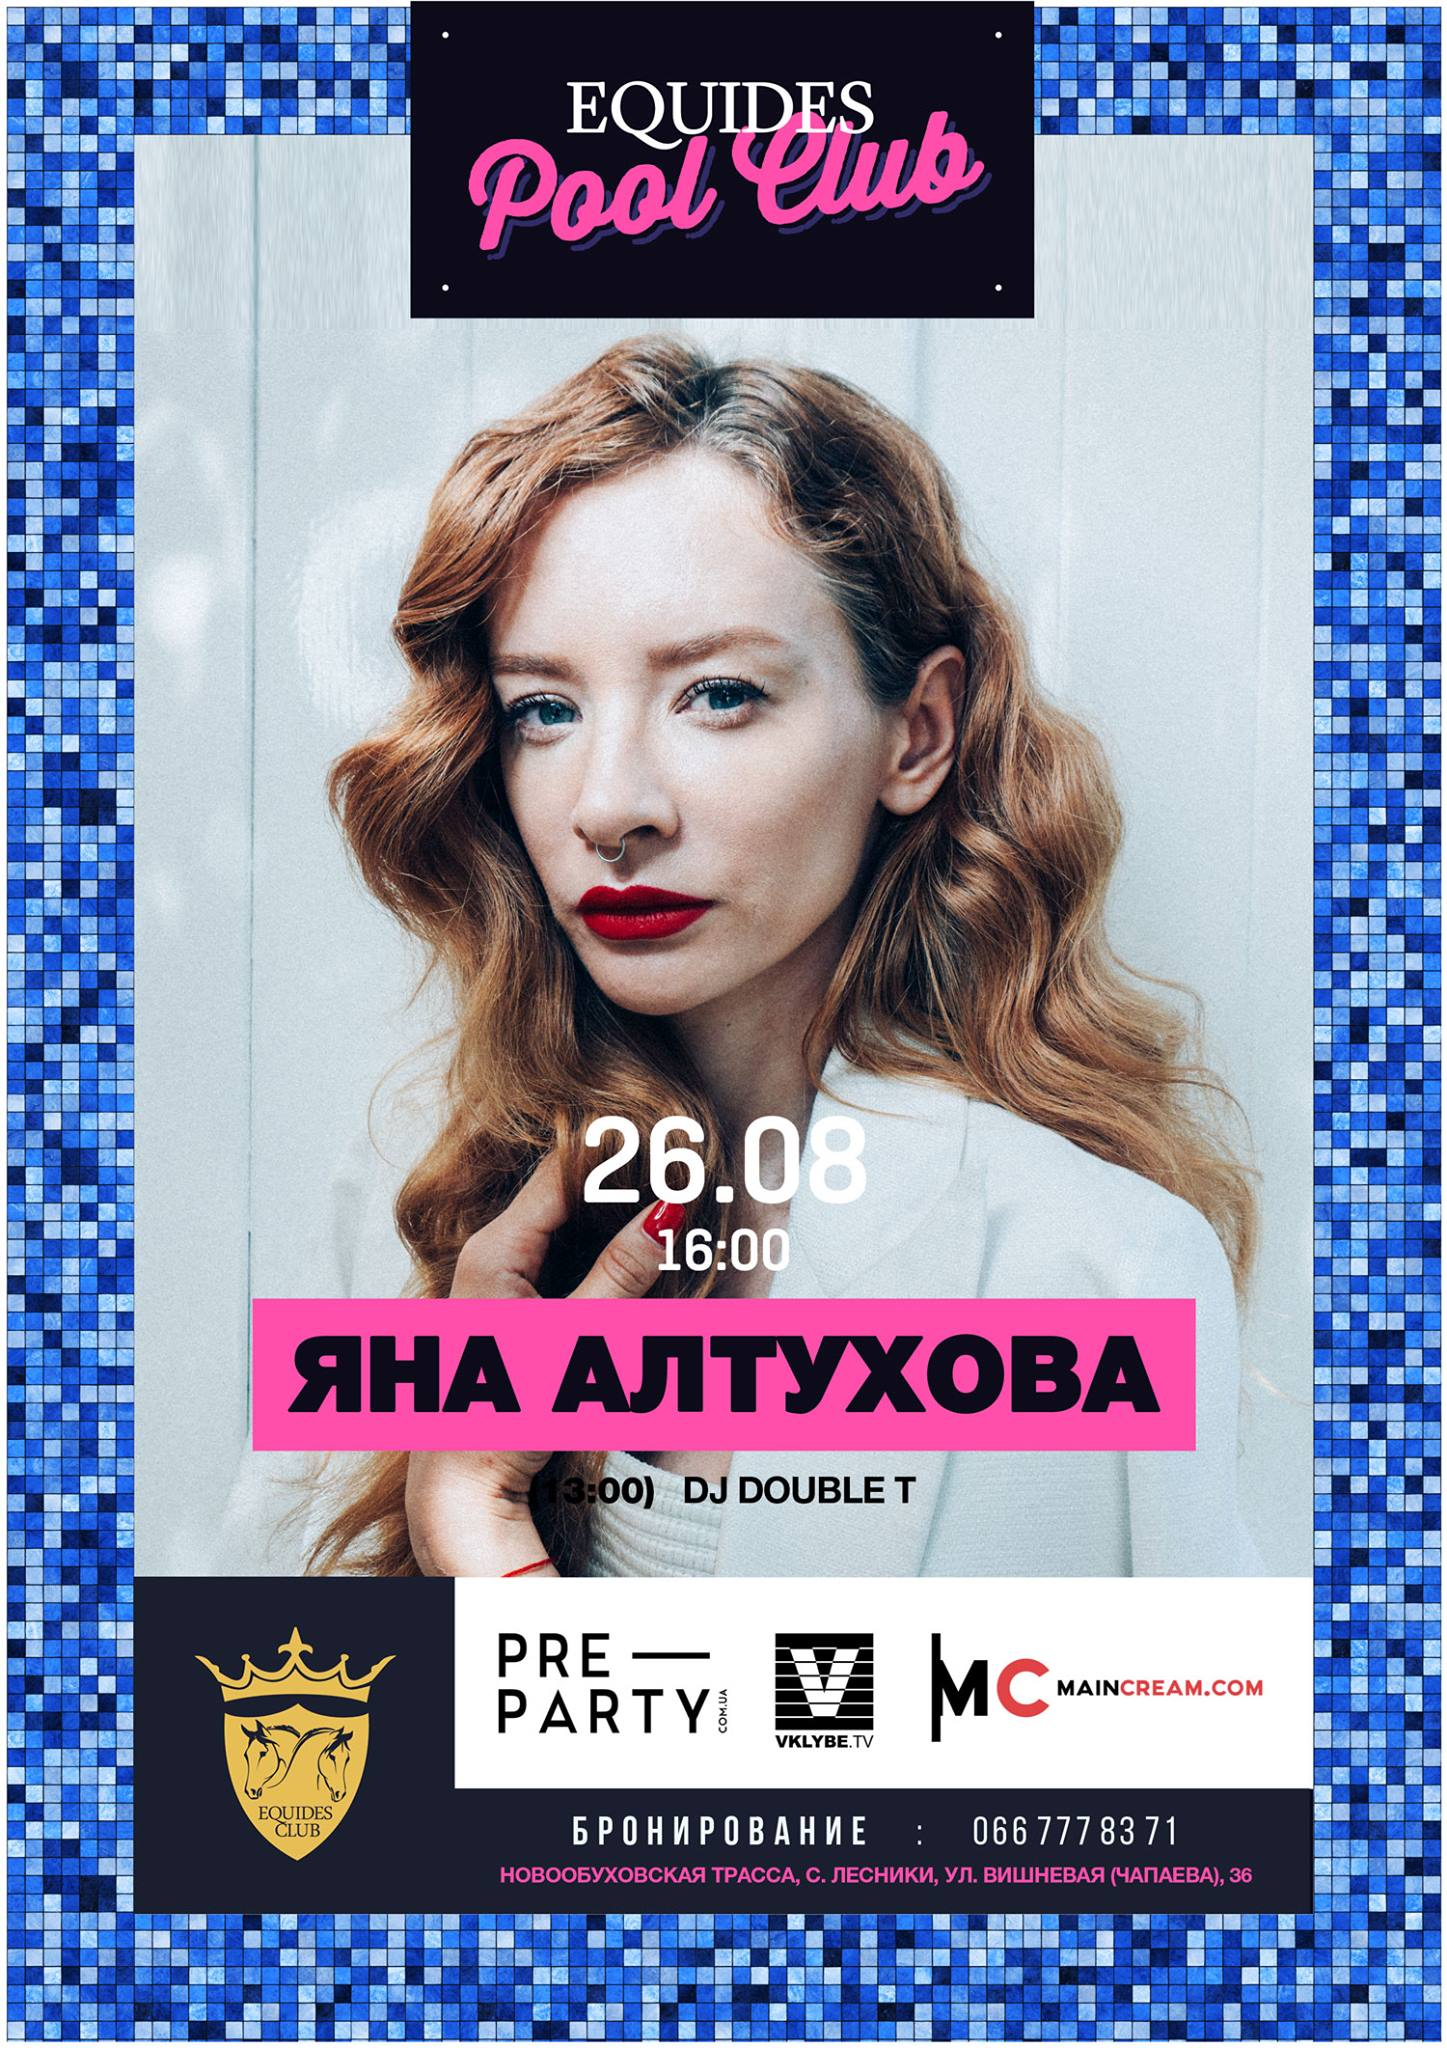 Saturday Equides Pool Party. Part IV. 26 августа, Киев, Equides Pool Club